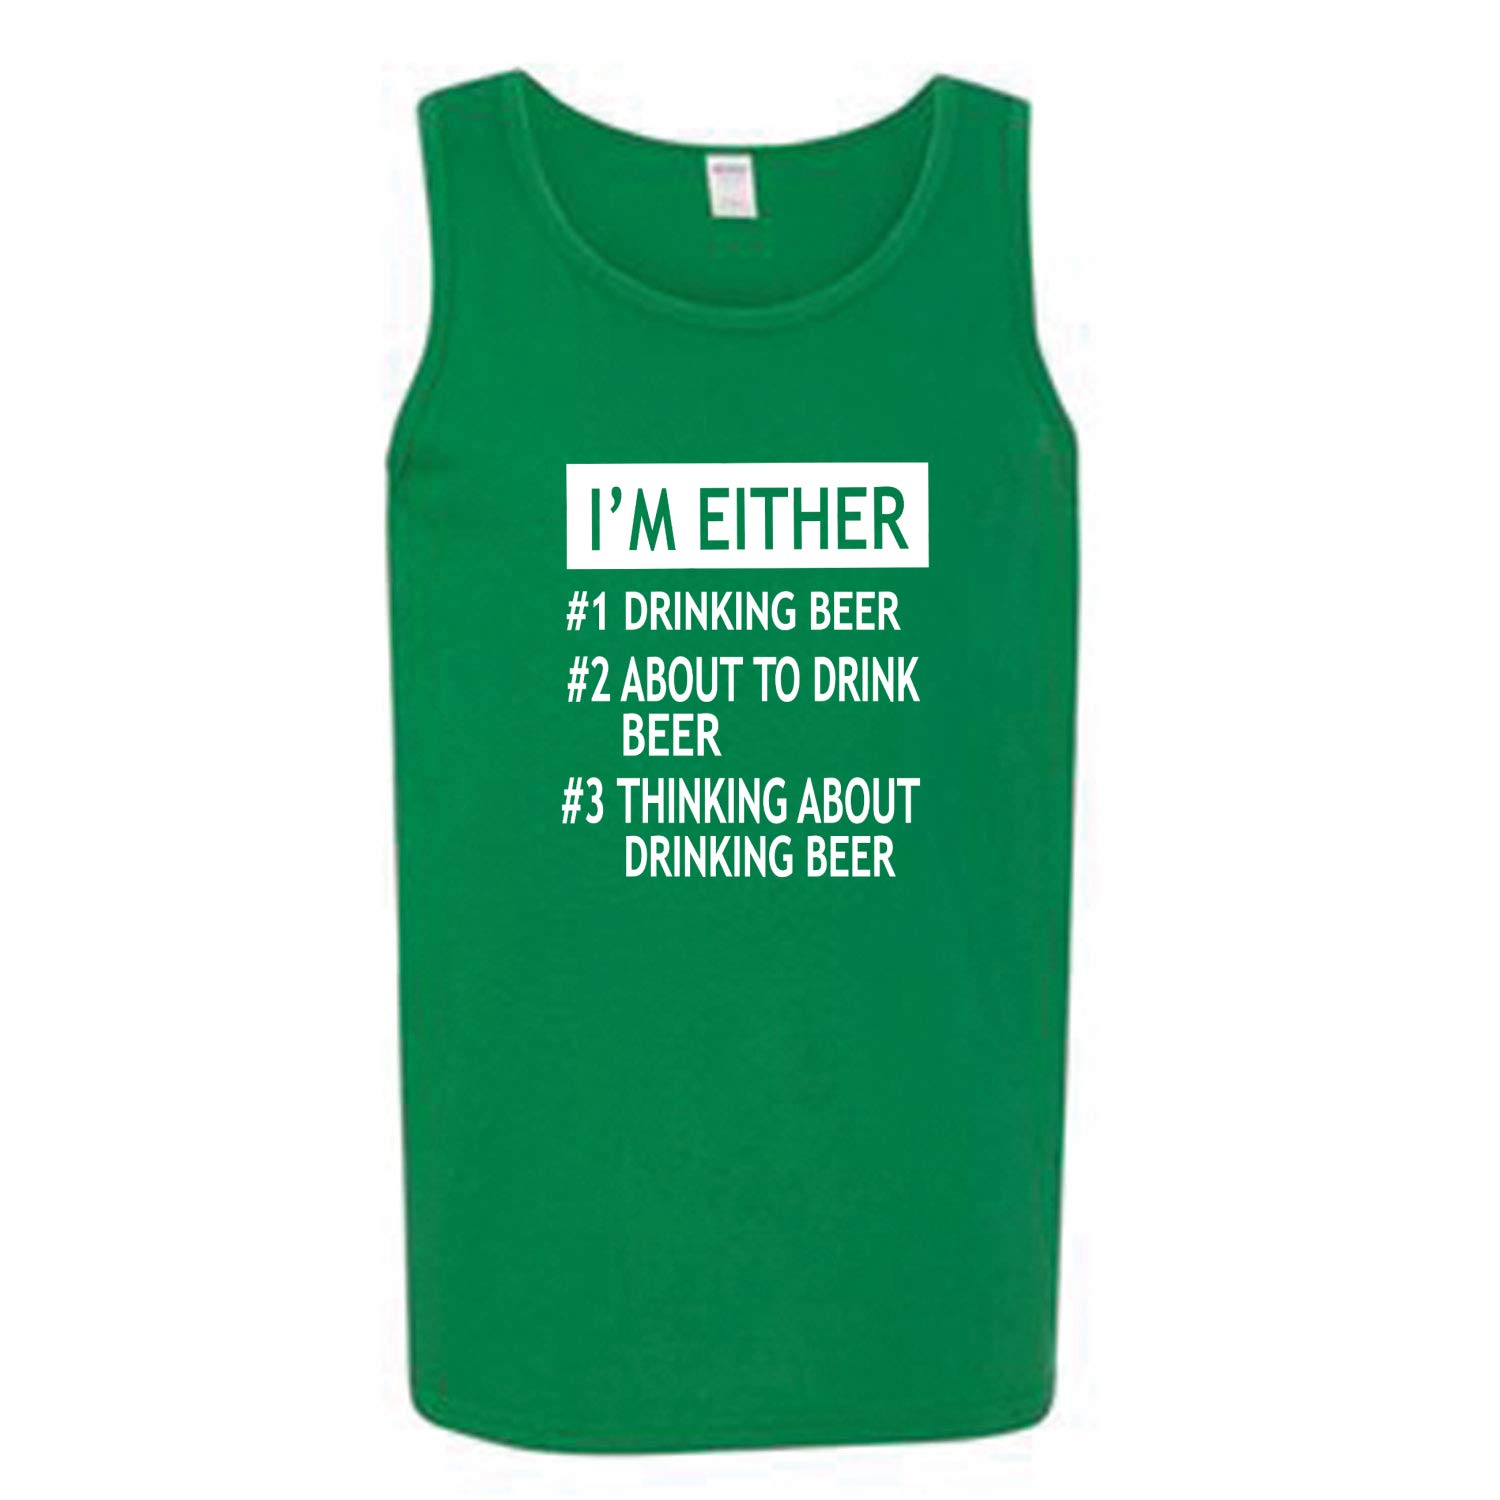 Im Either #1 Drinking Beer #2 About to Drink Beer #3 Thinking About Drinking Beer Drinking Mens Graphic Tank Top